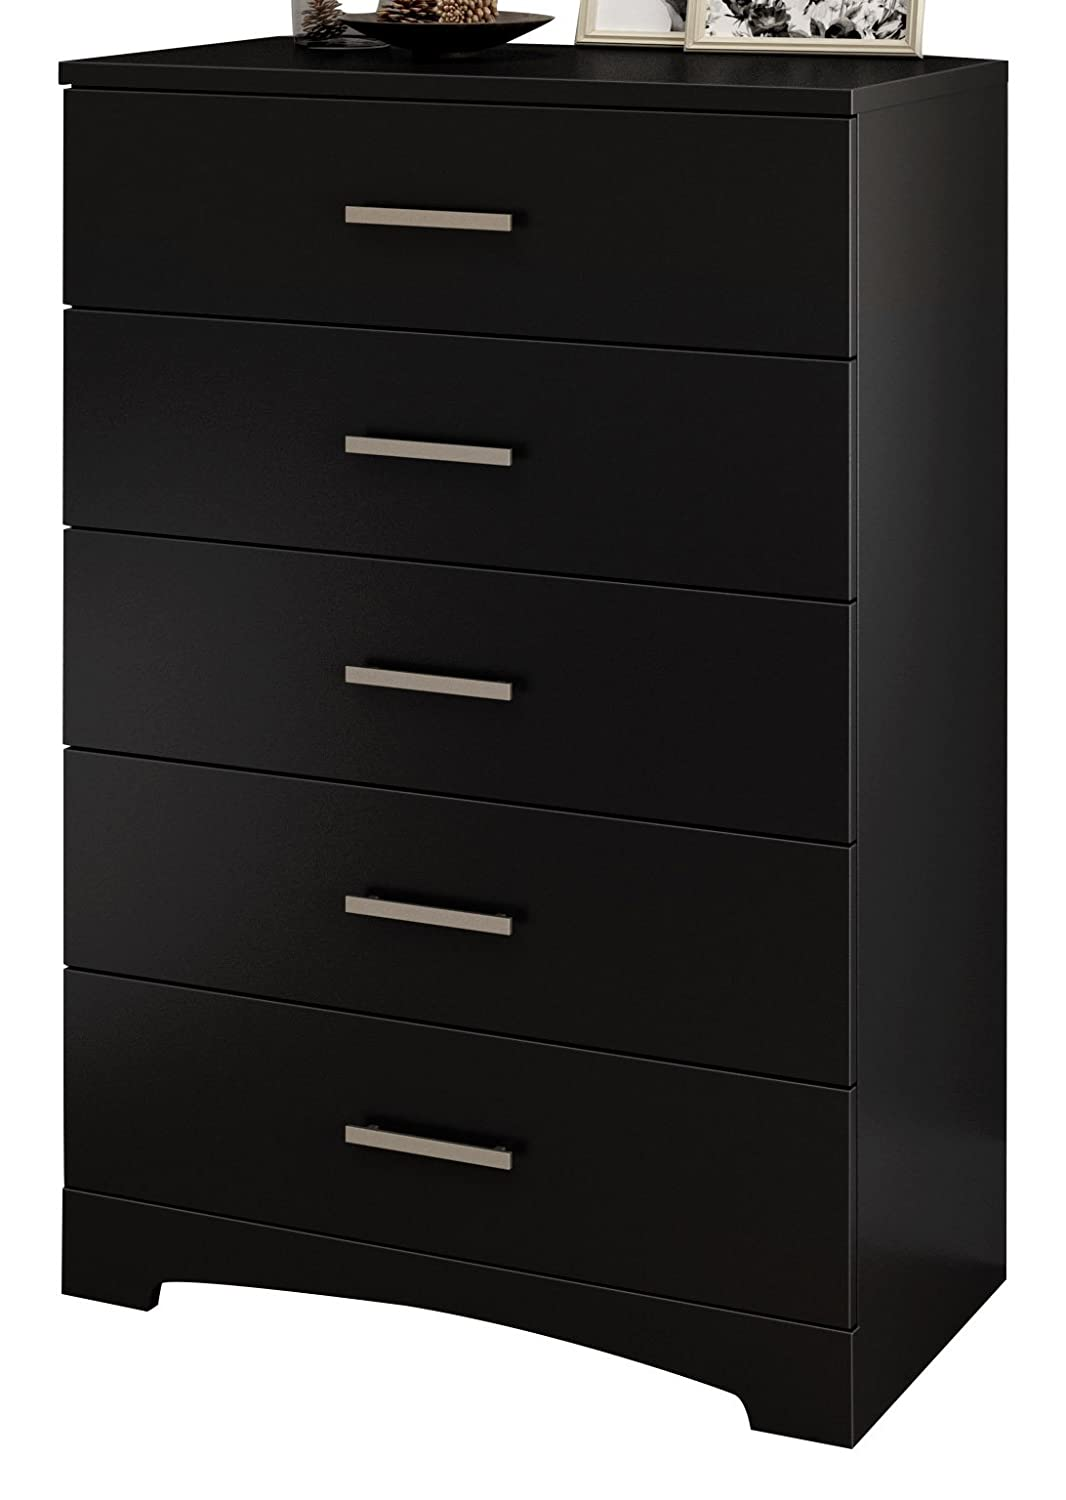 South Shore Gramercy 5-Drawer Dresser, Pure Black with Brushed Nickel Handles 10448